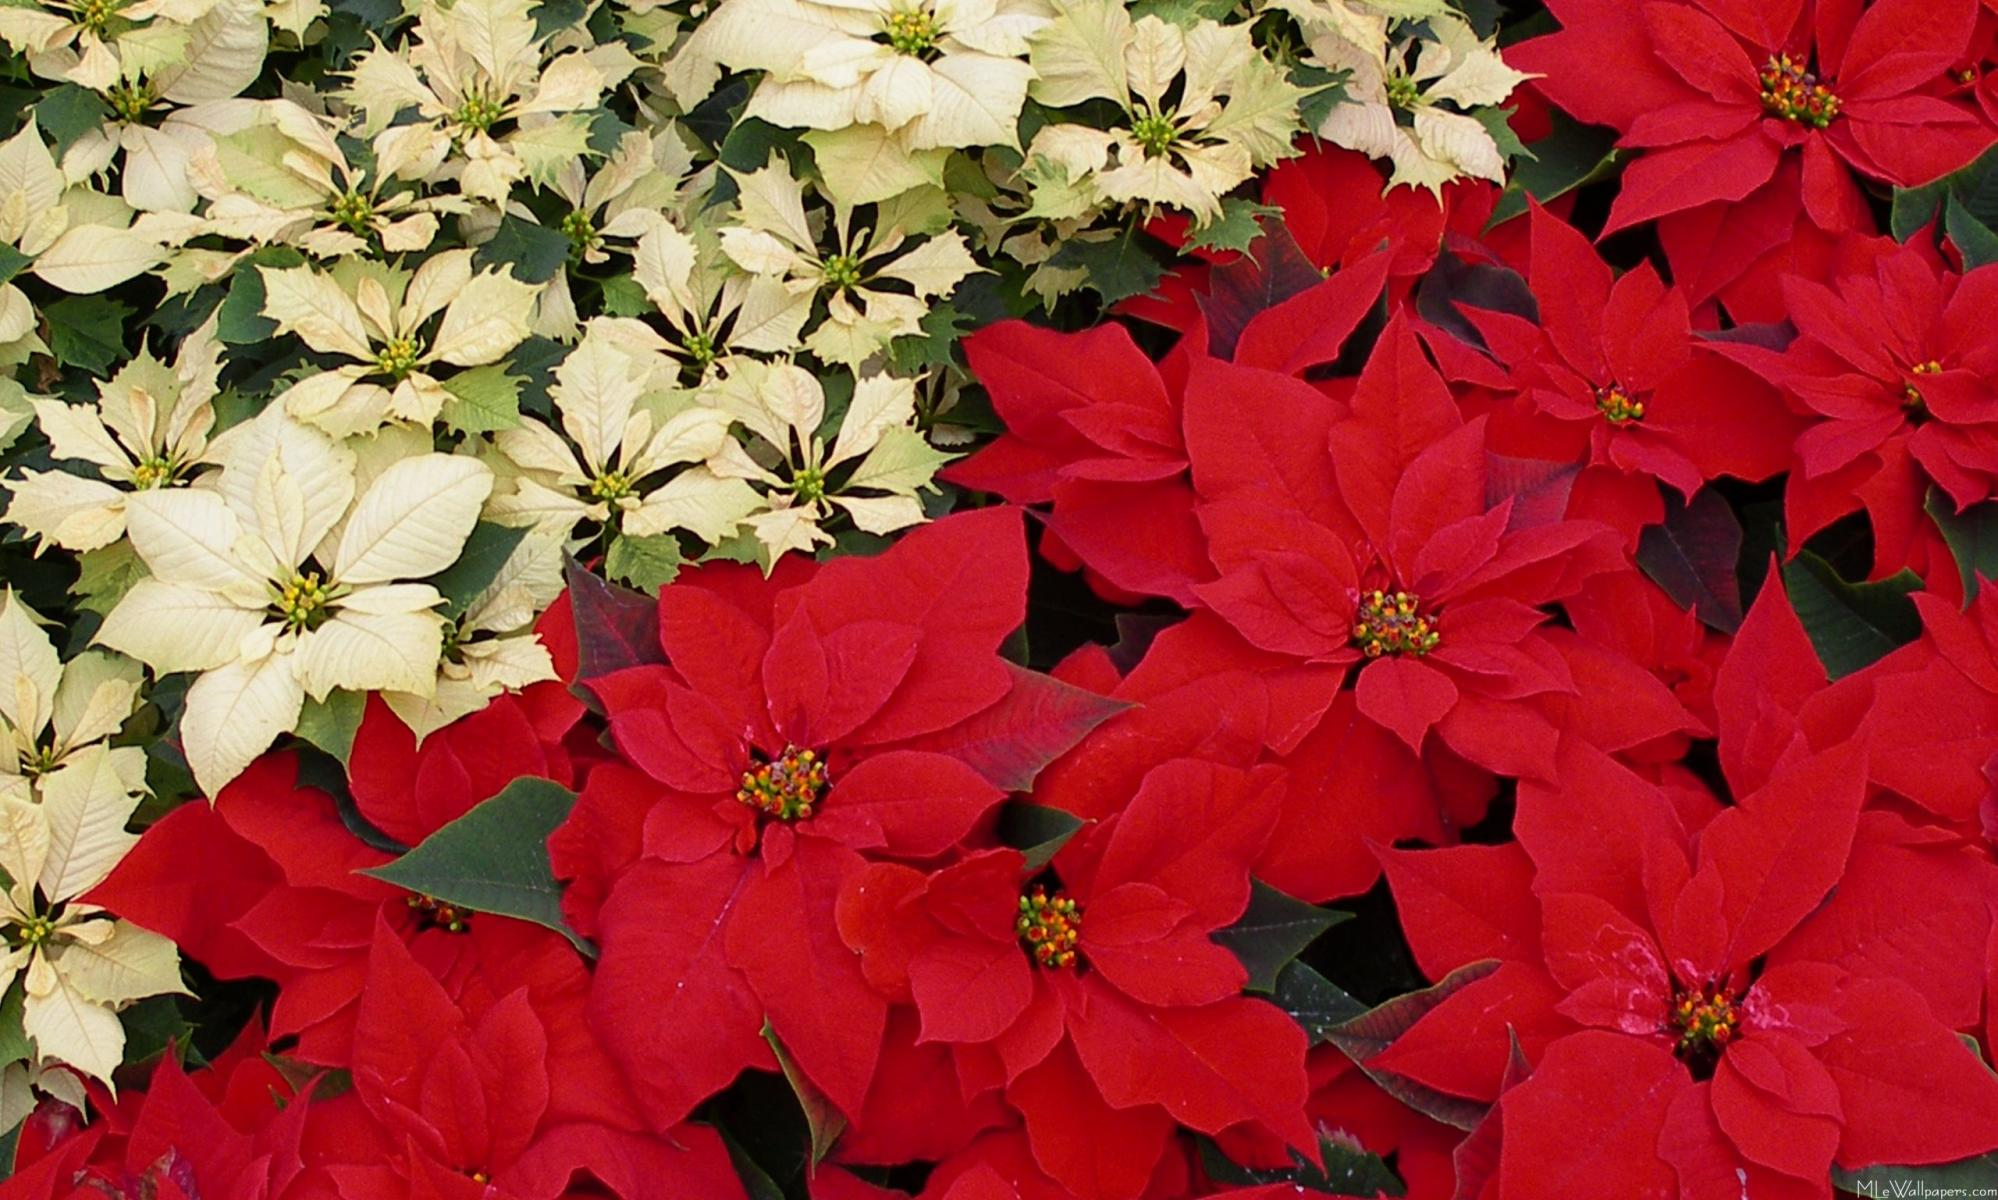 or red poinsettia - photo #3